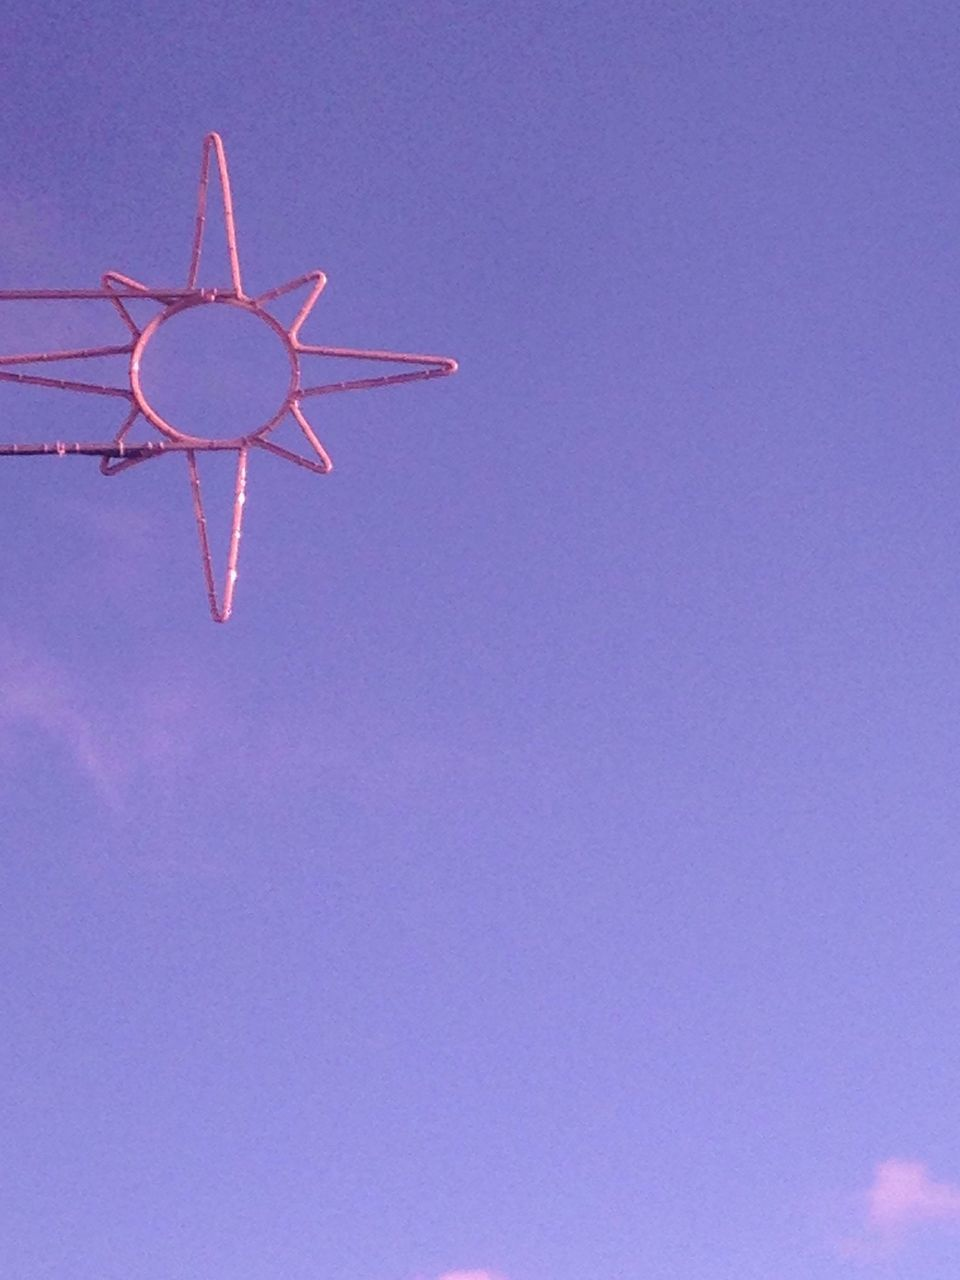 copy space, clear sky, no people, low angle view, day, outdoors, flying